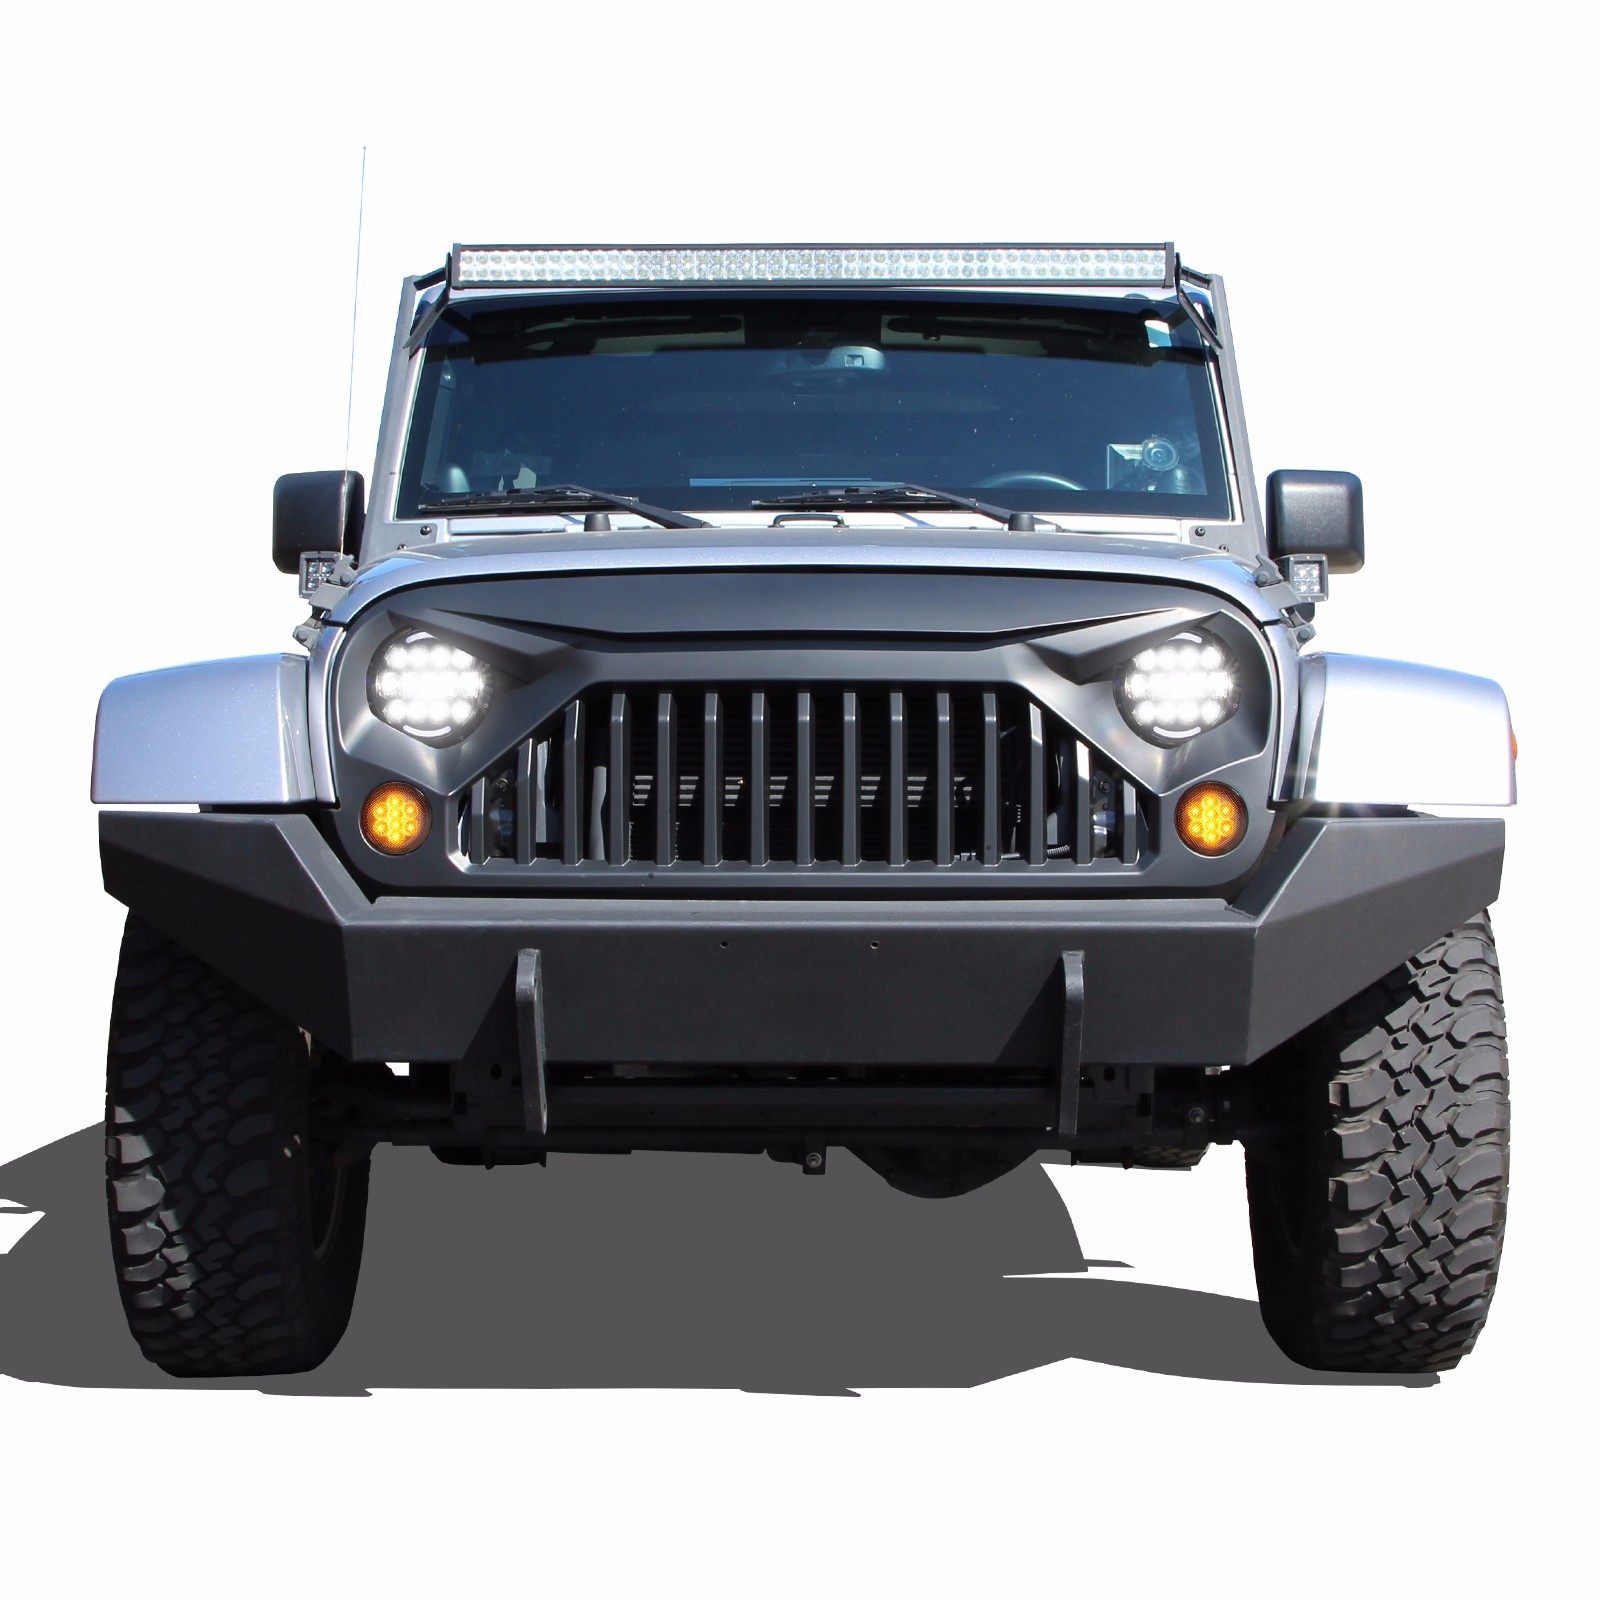 jeep wrangler gladiator grille grill angry jk bird front rubicon unlimited sahara 2007 lights oe lighting upgrade jku tail headlights